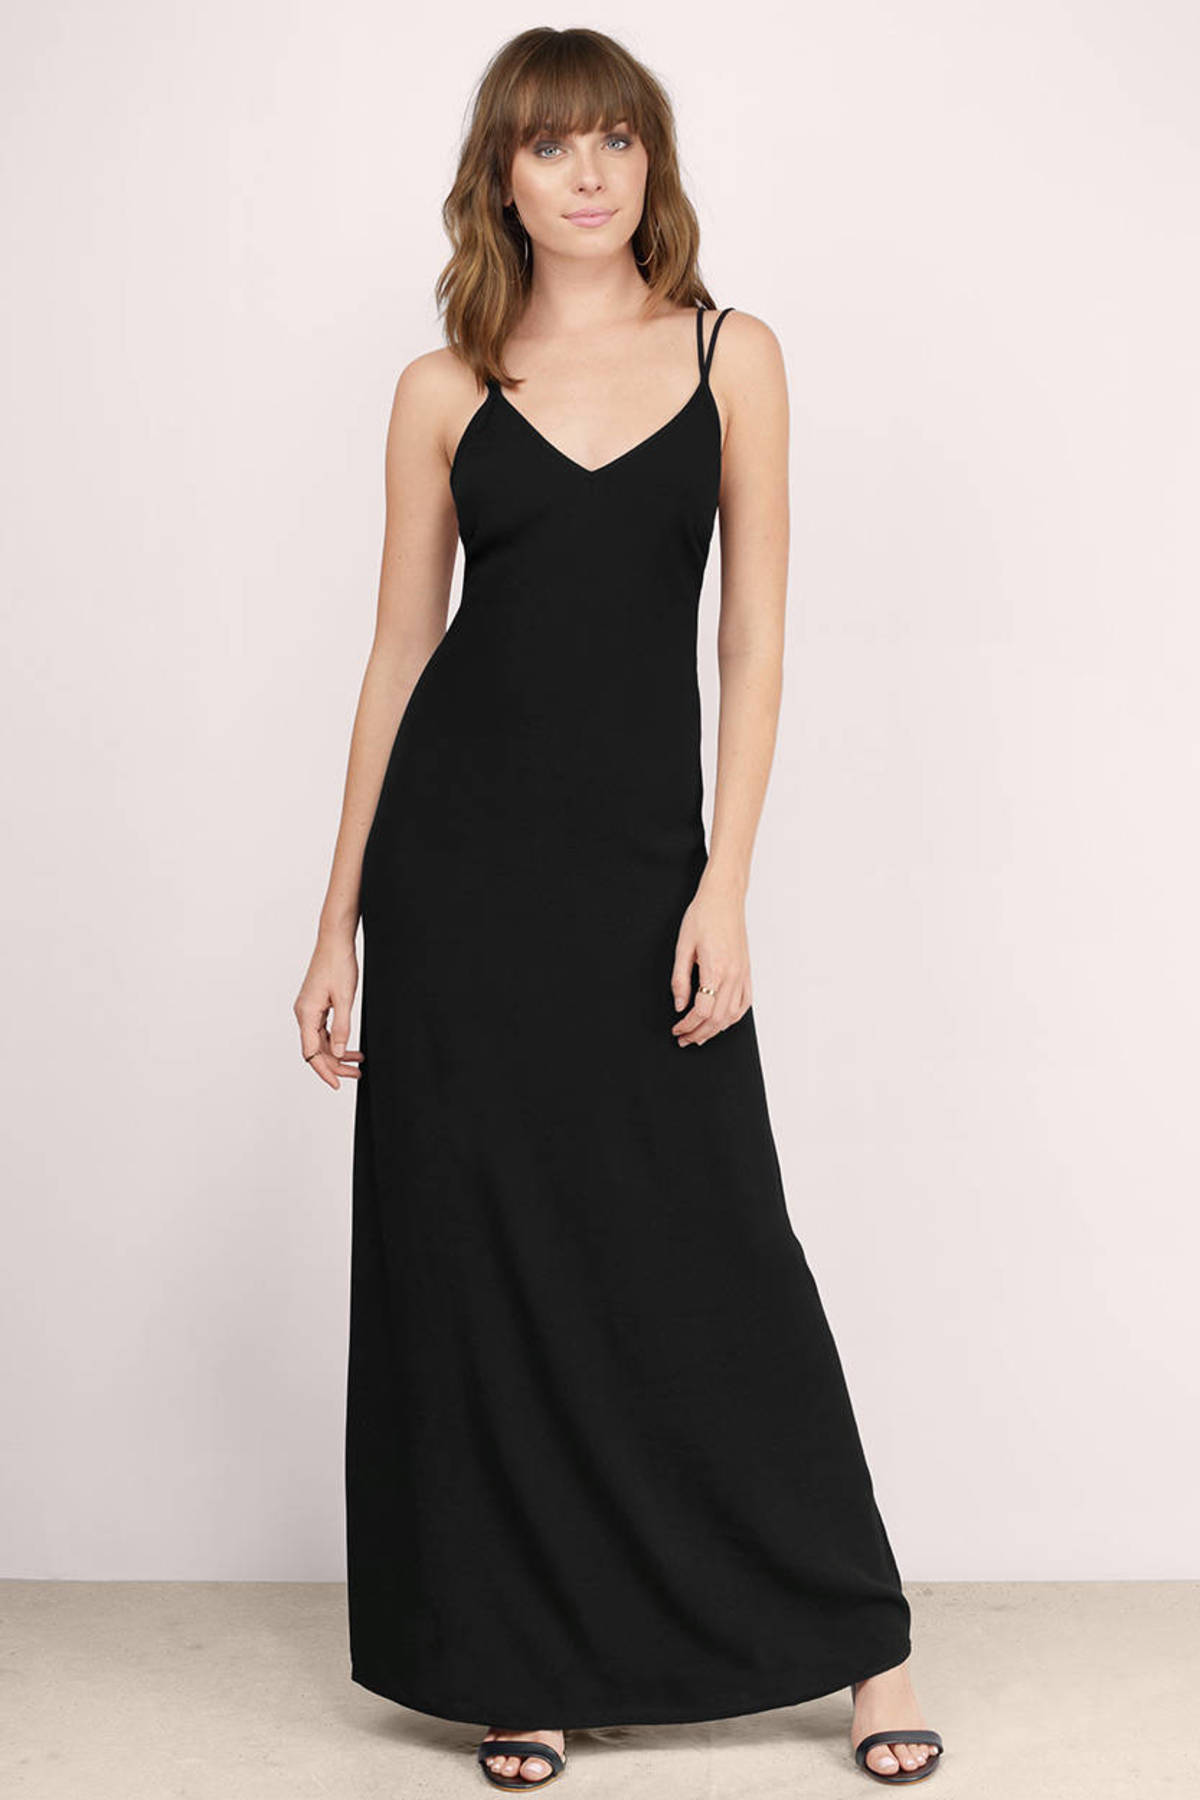 Extra Long Maxi Dresses | Shop Extra Long Maxi Dresses at Tobi